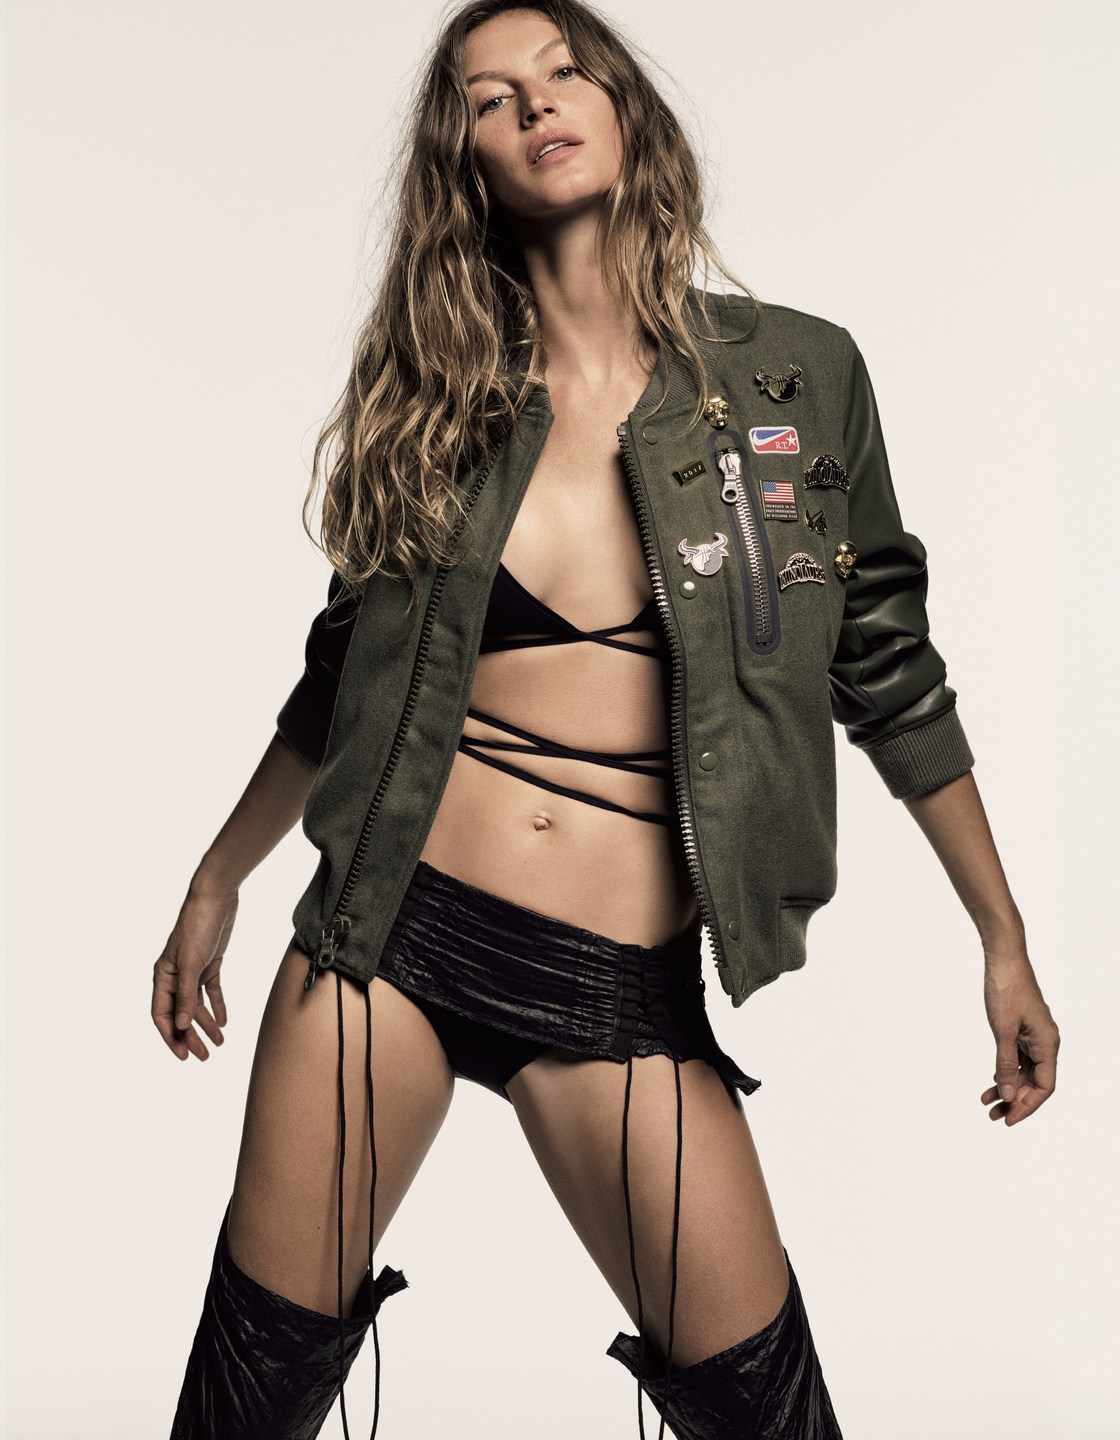 Gisele Bundchen by Luigi and Iango for Vogue Japan